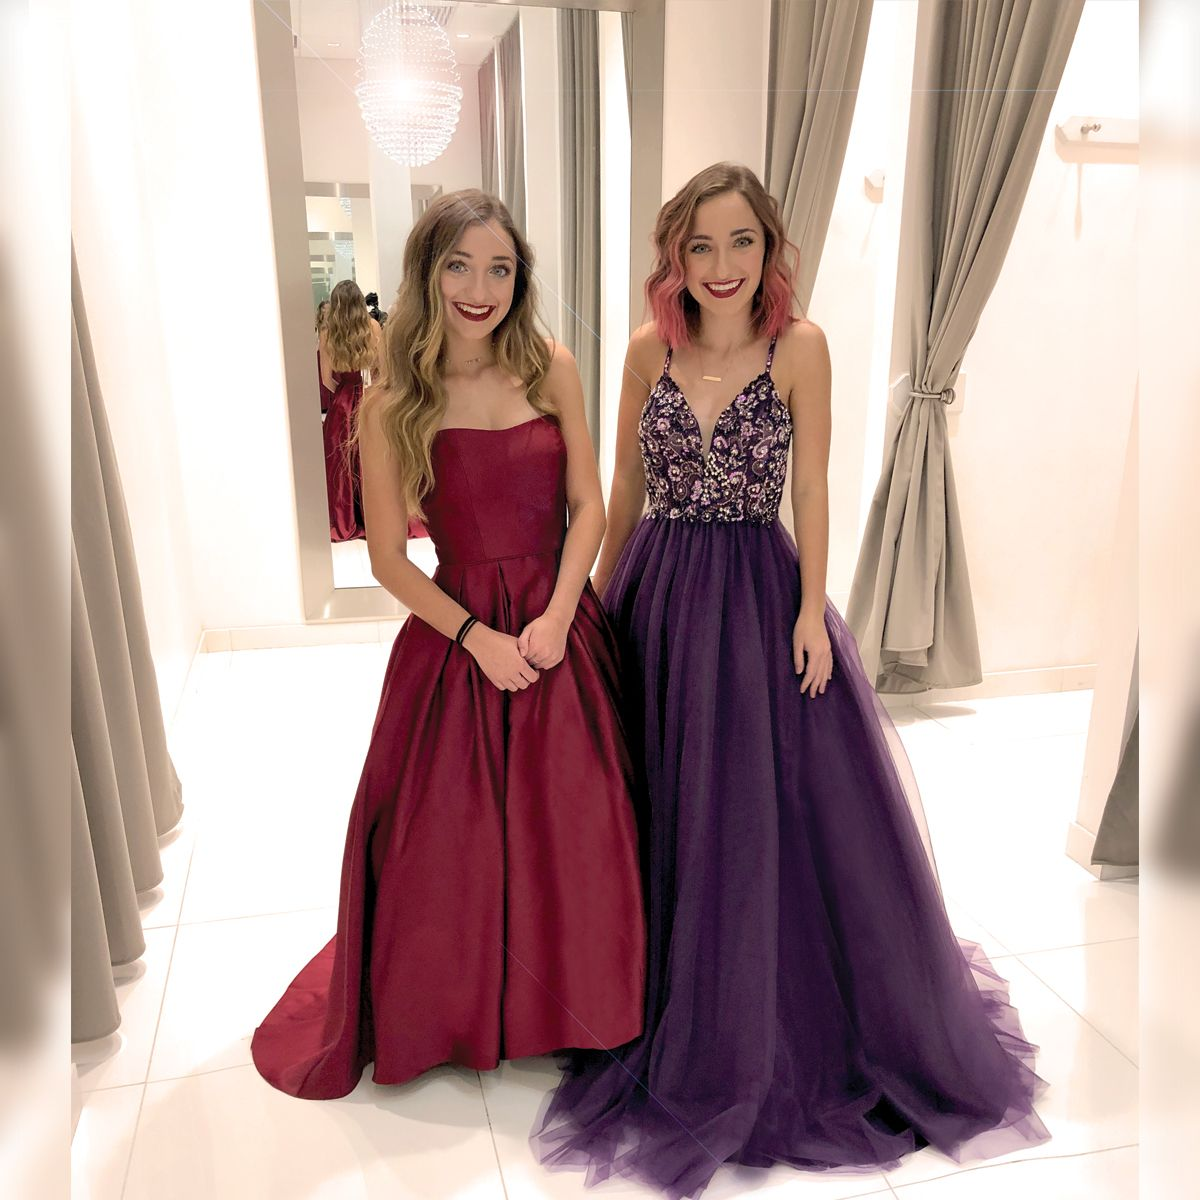 All Ready For #PROM18 👗 😍 Watch Brooklyn And Bailey Try On